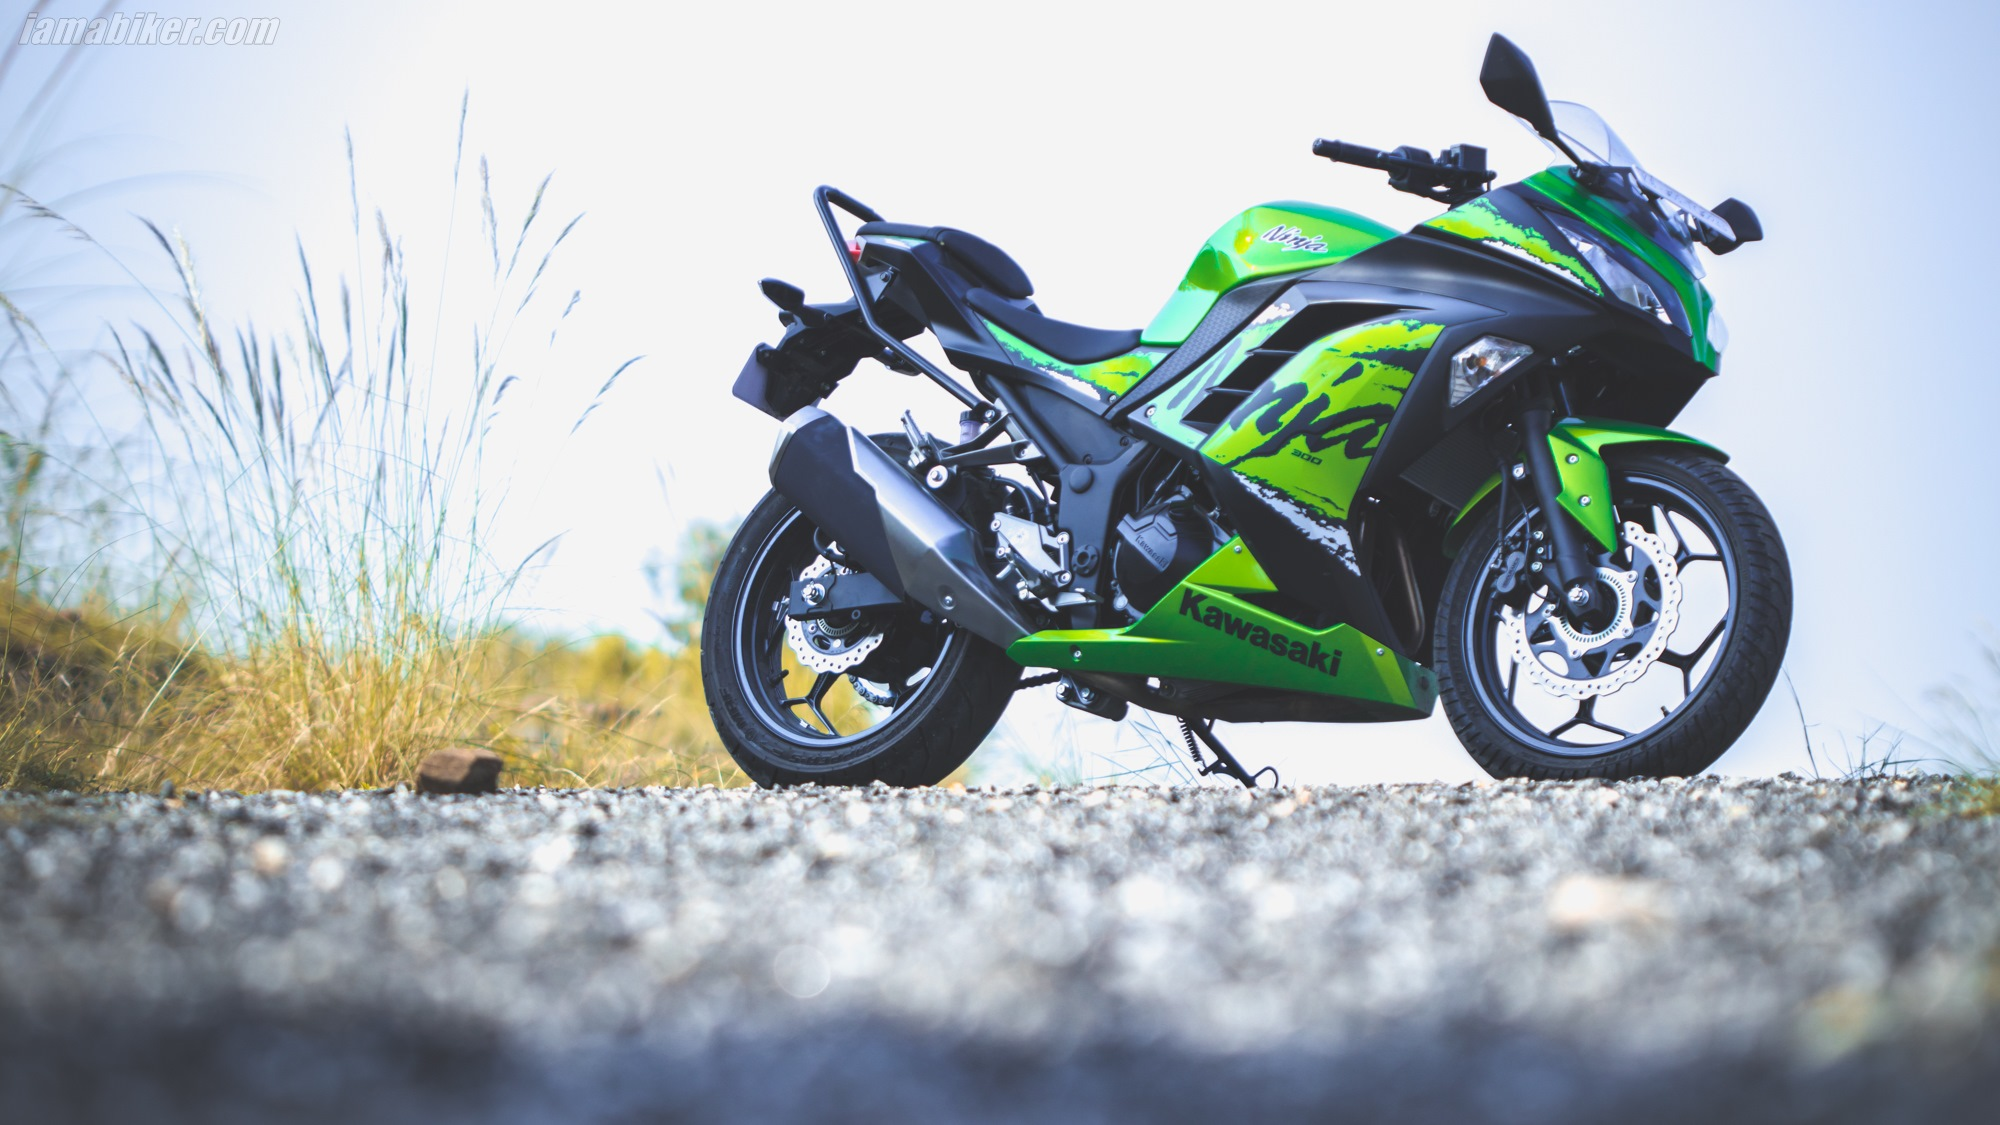 2019 Kawasaki Ninja 300 ABS HD wallpapers